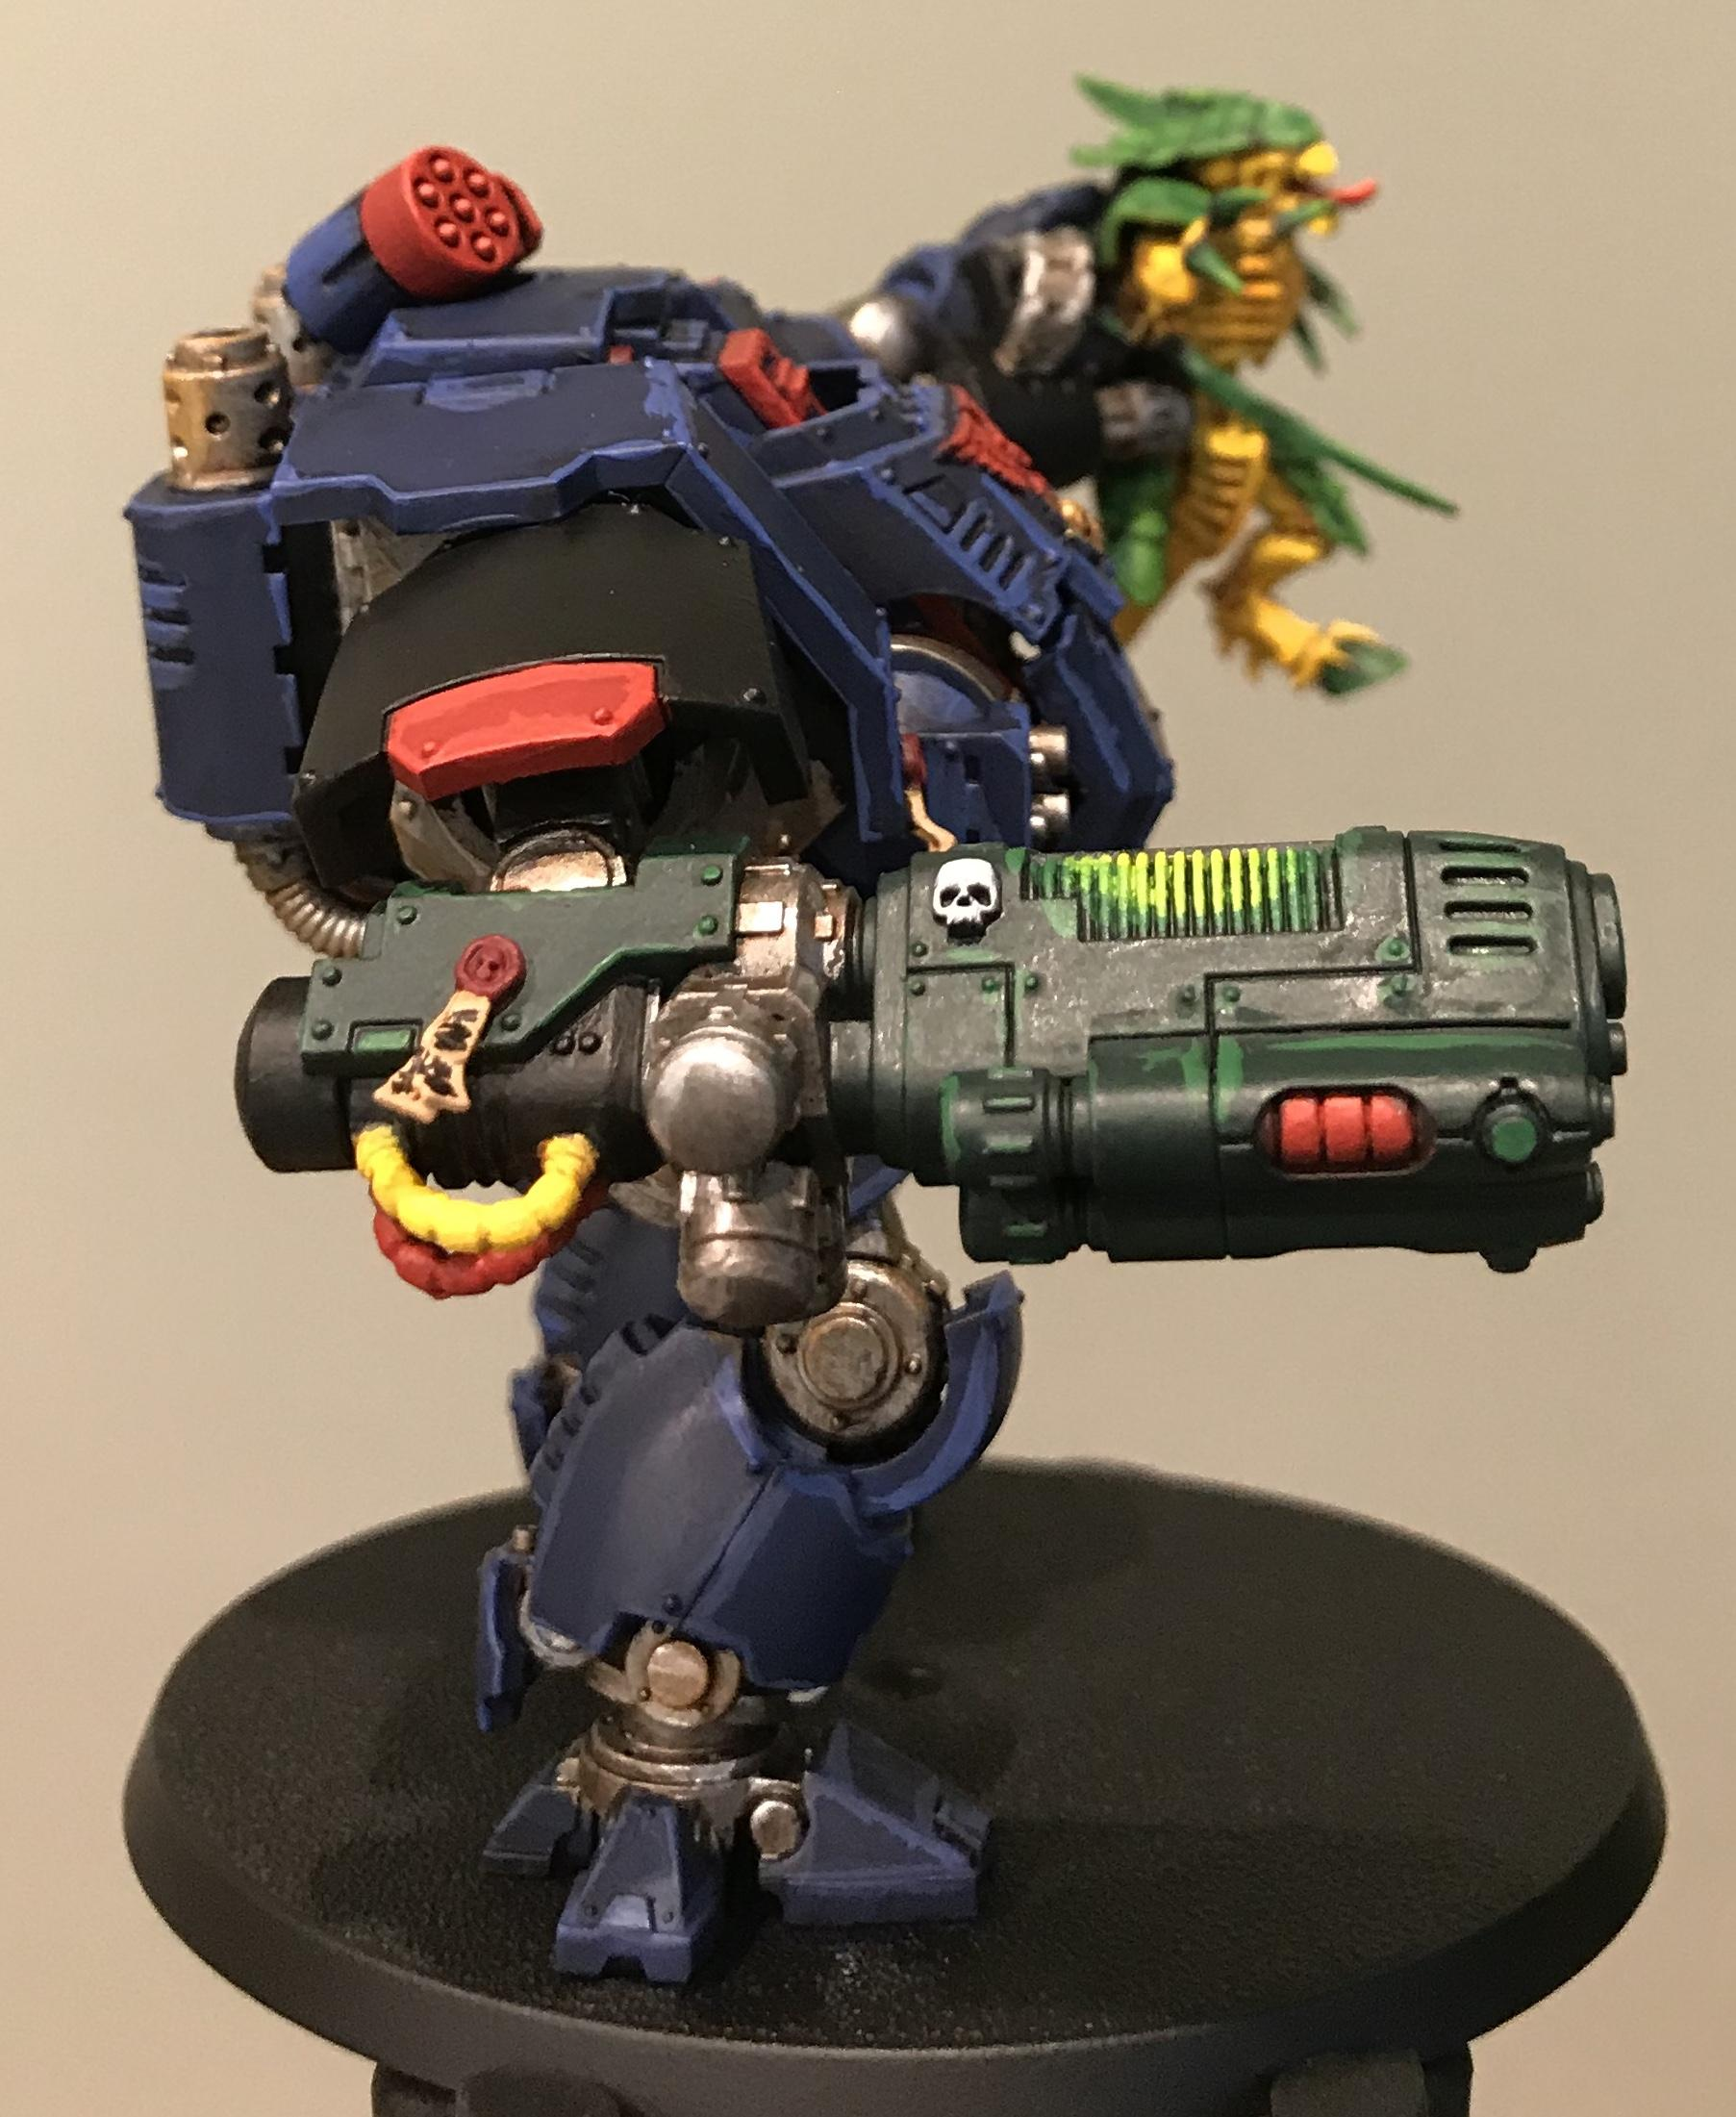 Night Ravens Redemptor lifting Tyranid Warrior Highlighted - right